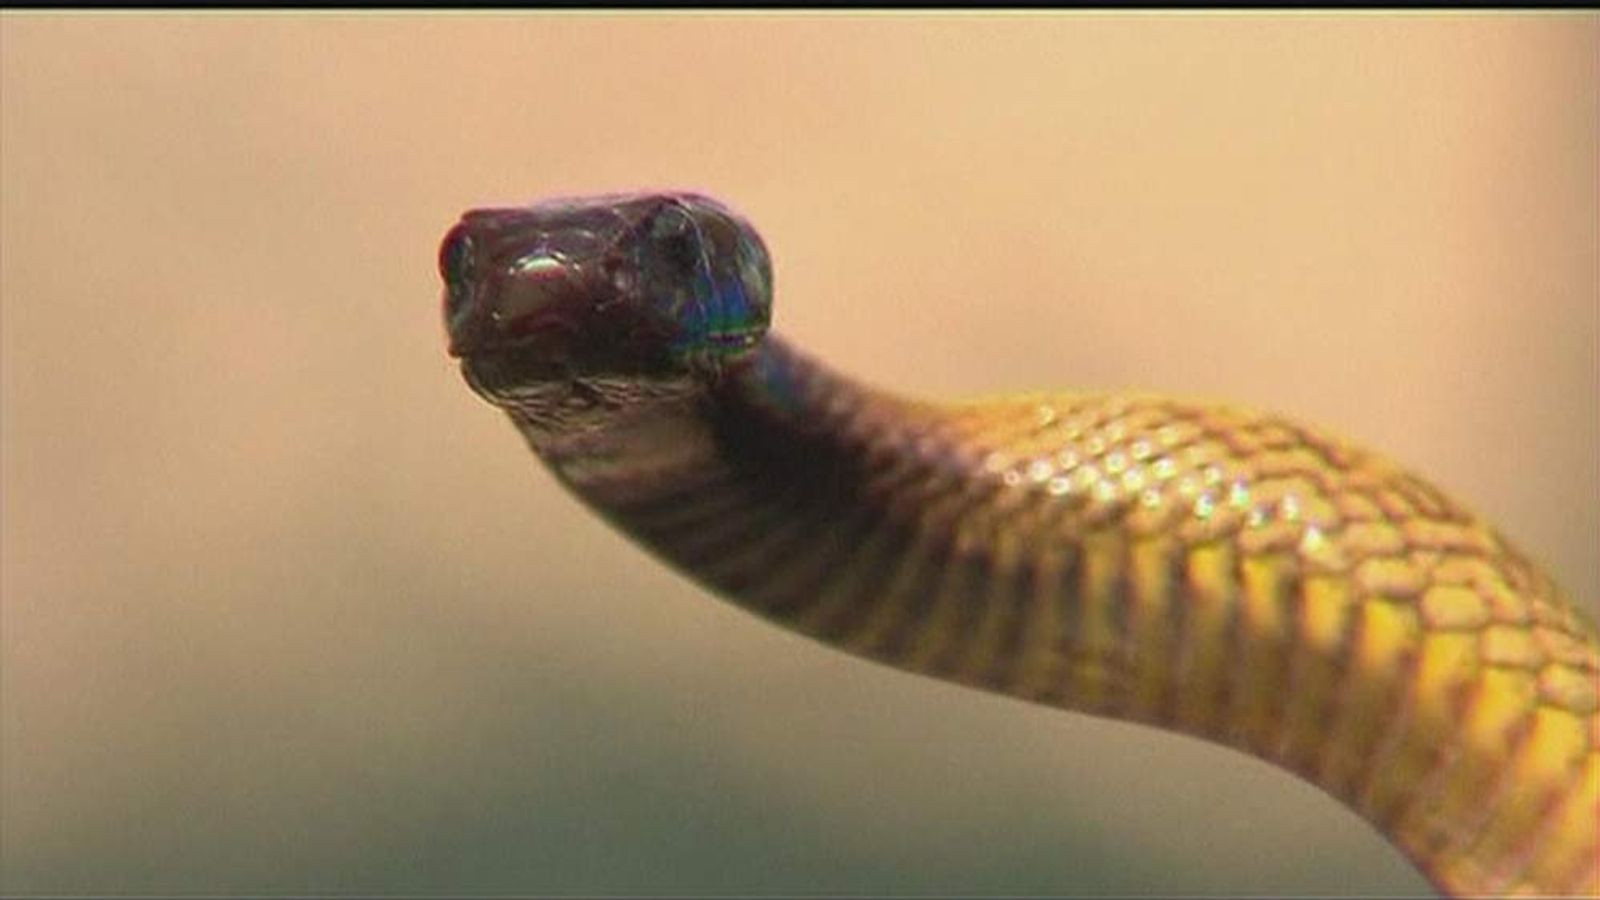 Inland taipan is also known as the fierce snake because of the power of its venom